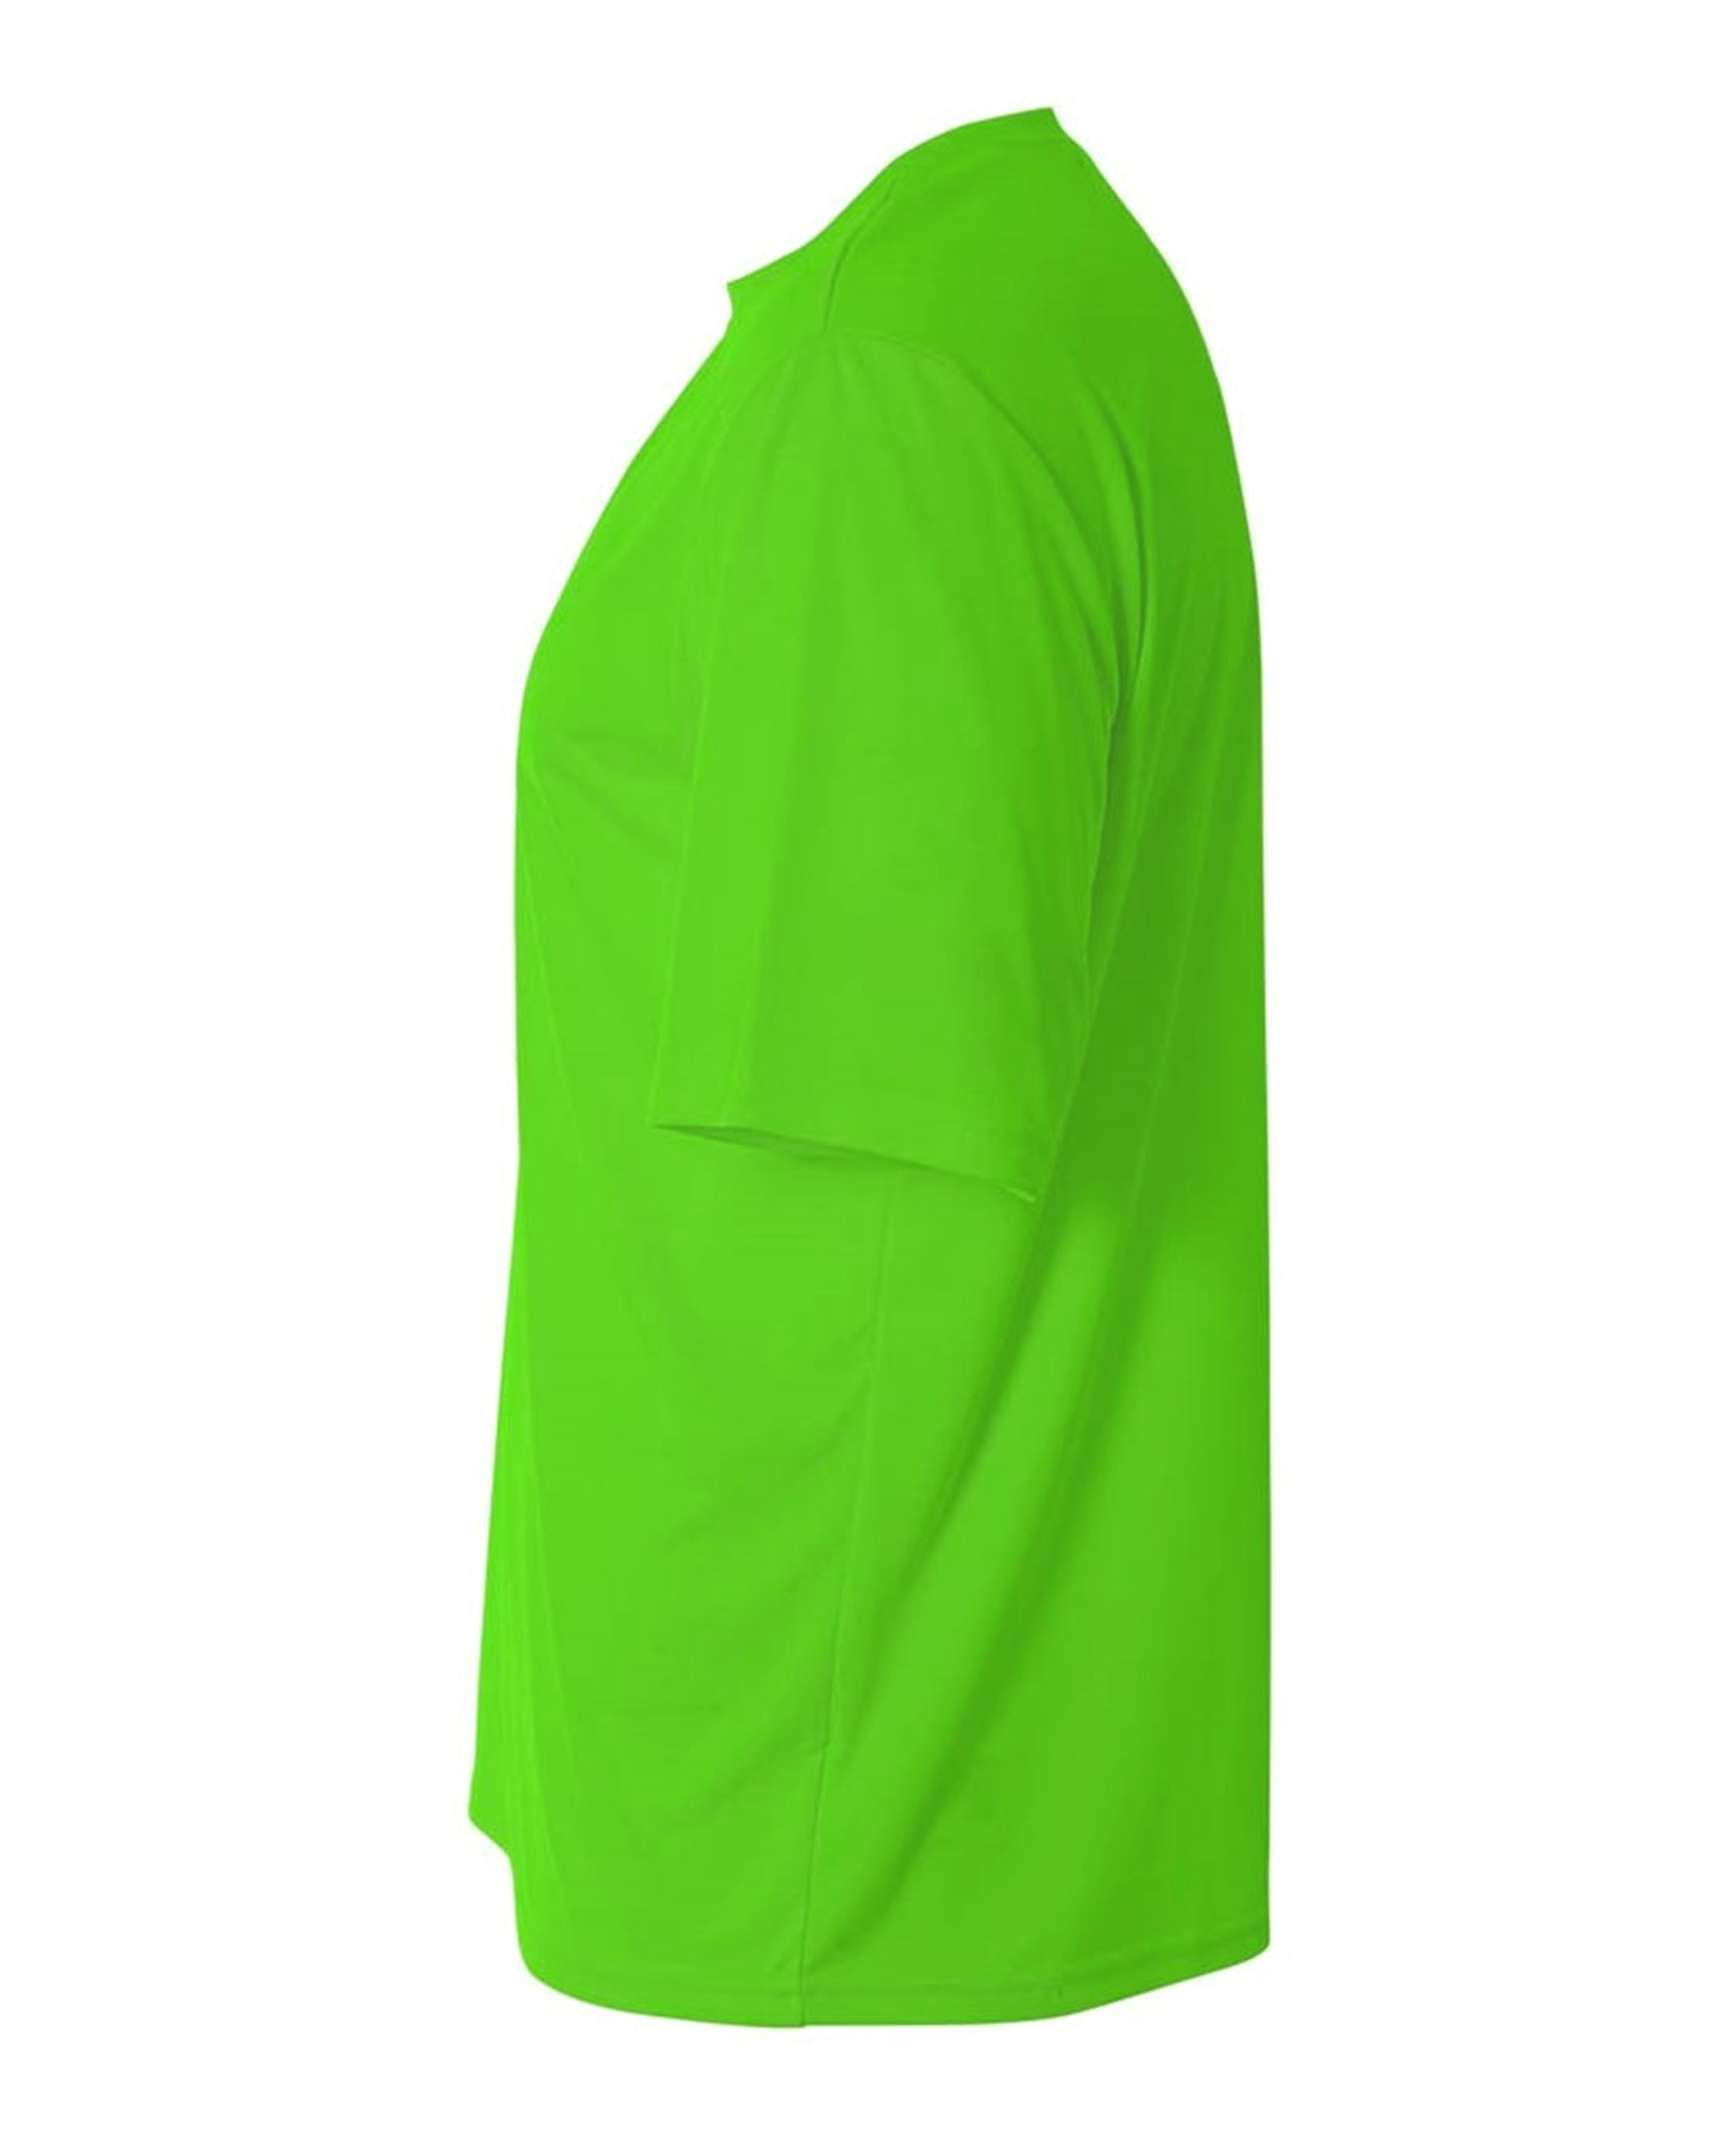 Mens-Rash-Guard-Surf-Swimwear-Swim-Shirt-SPF-Sun-Protection-Loose-Fit-Fitting thumbnail 22